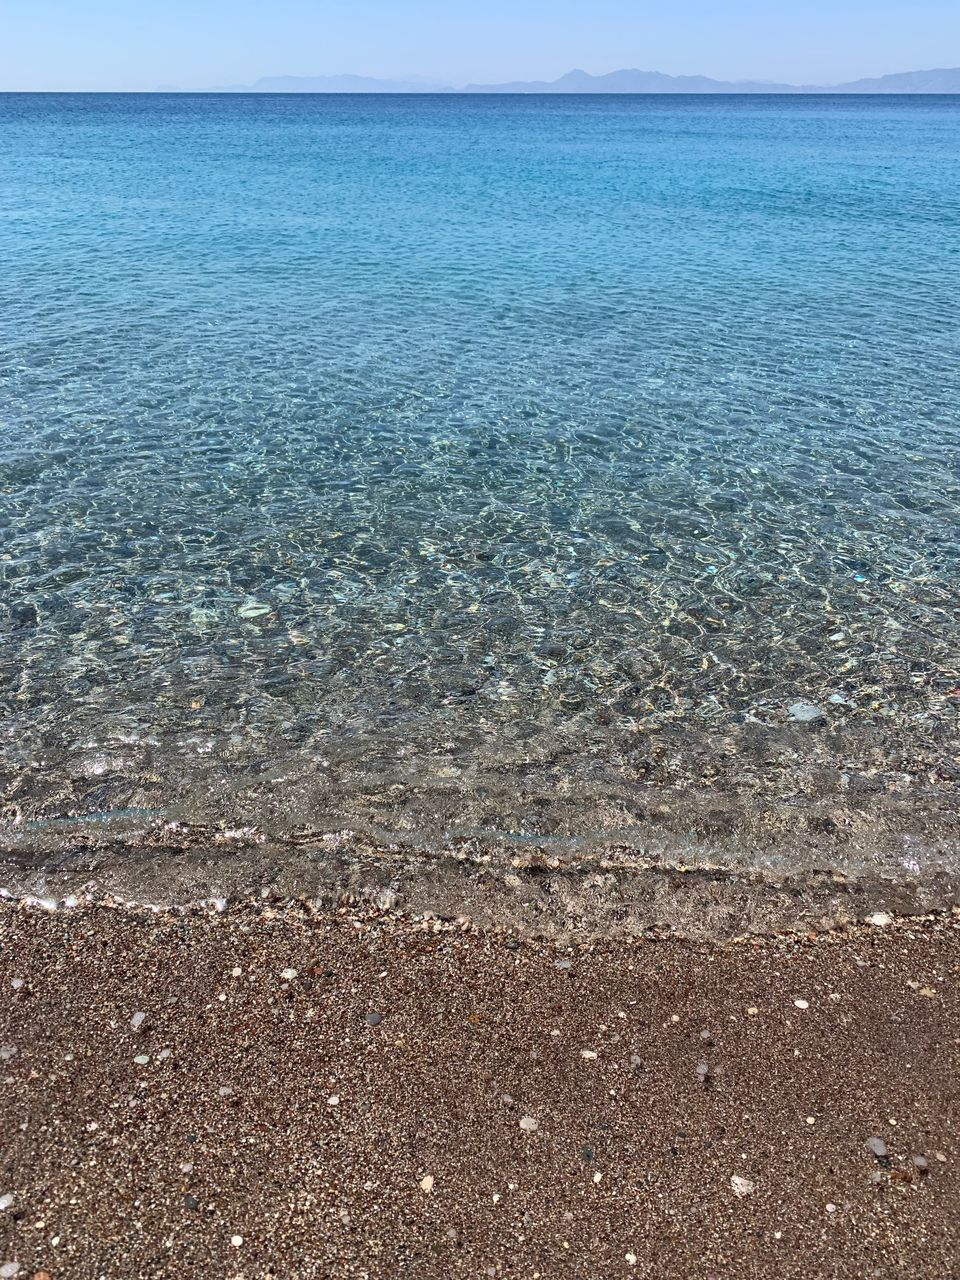 sea, water, beauty in nature, tranquility, scenics - nature, tranquil scene, horizon, land, nature, horizon over water, no people, day, sky, blue, beach, idyllic, sand, underwater, undersea, outdoors, turquoise colored, purity, clean, shallow